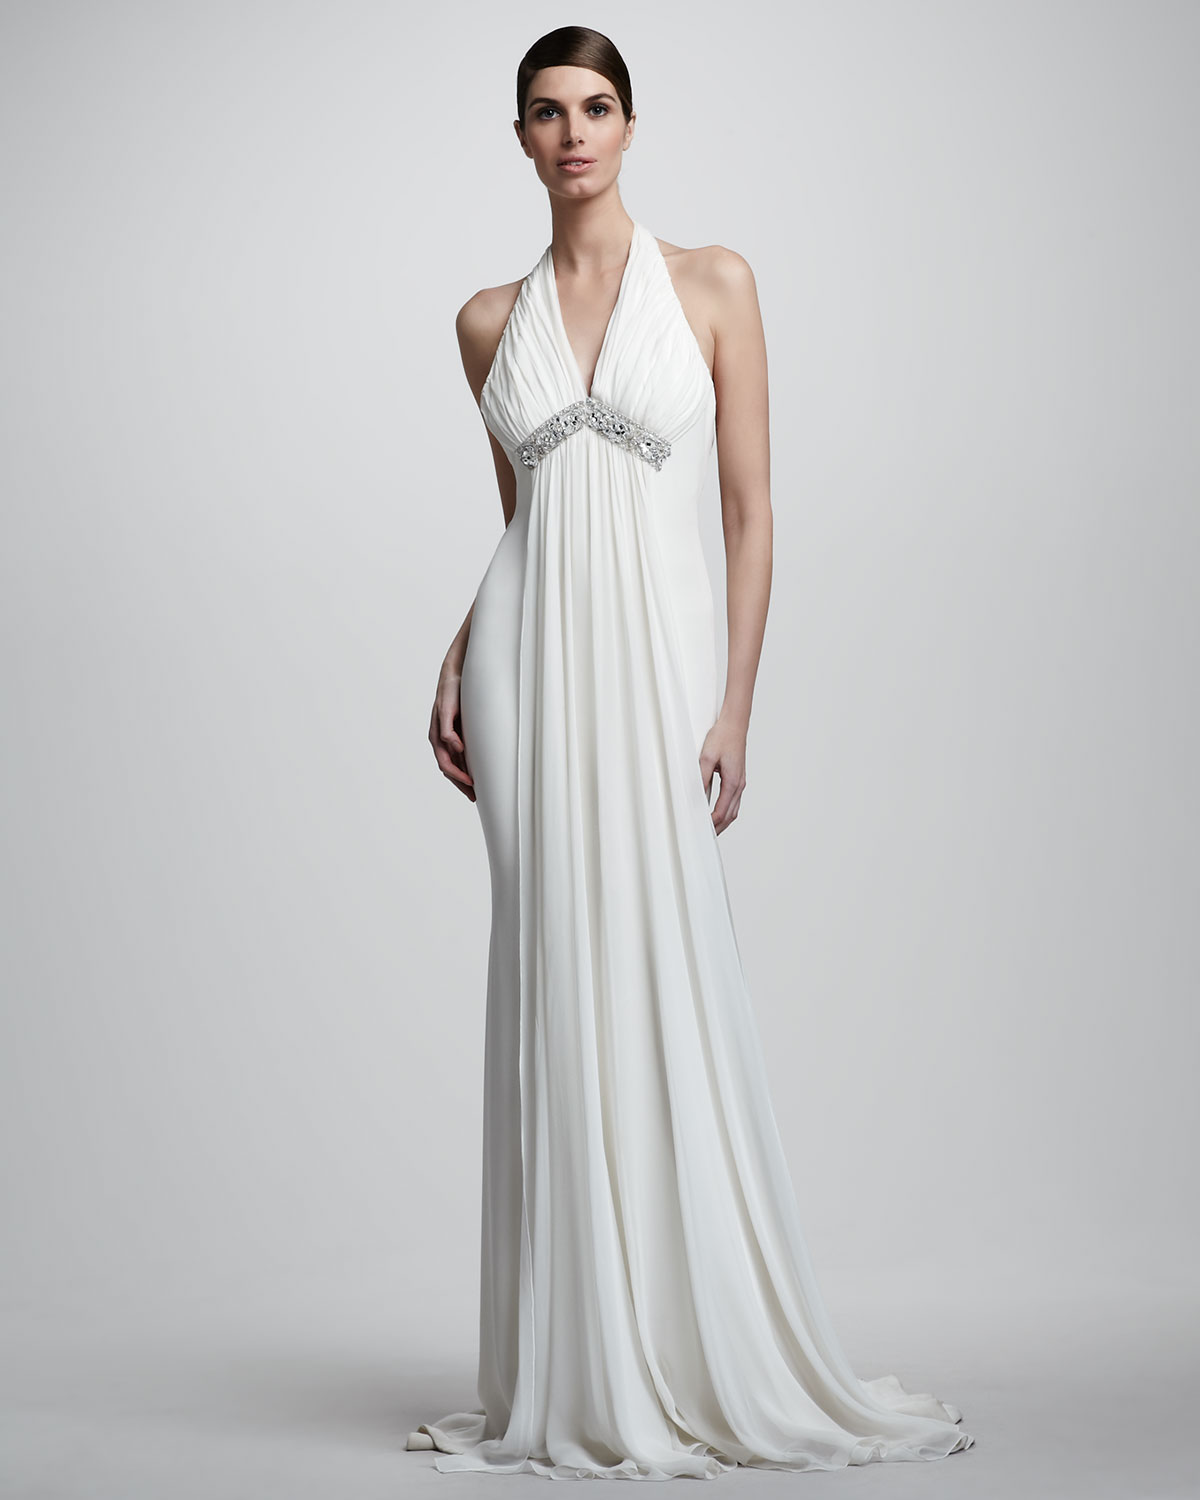 Notte by marchesa Draped Halter Chiffon Gown in White - Lyst